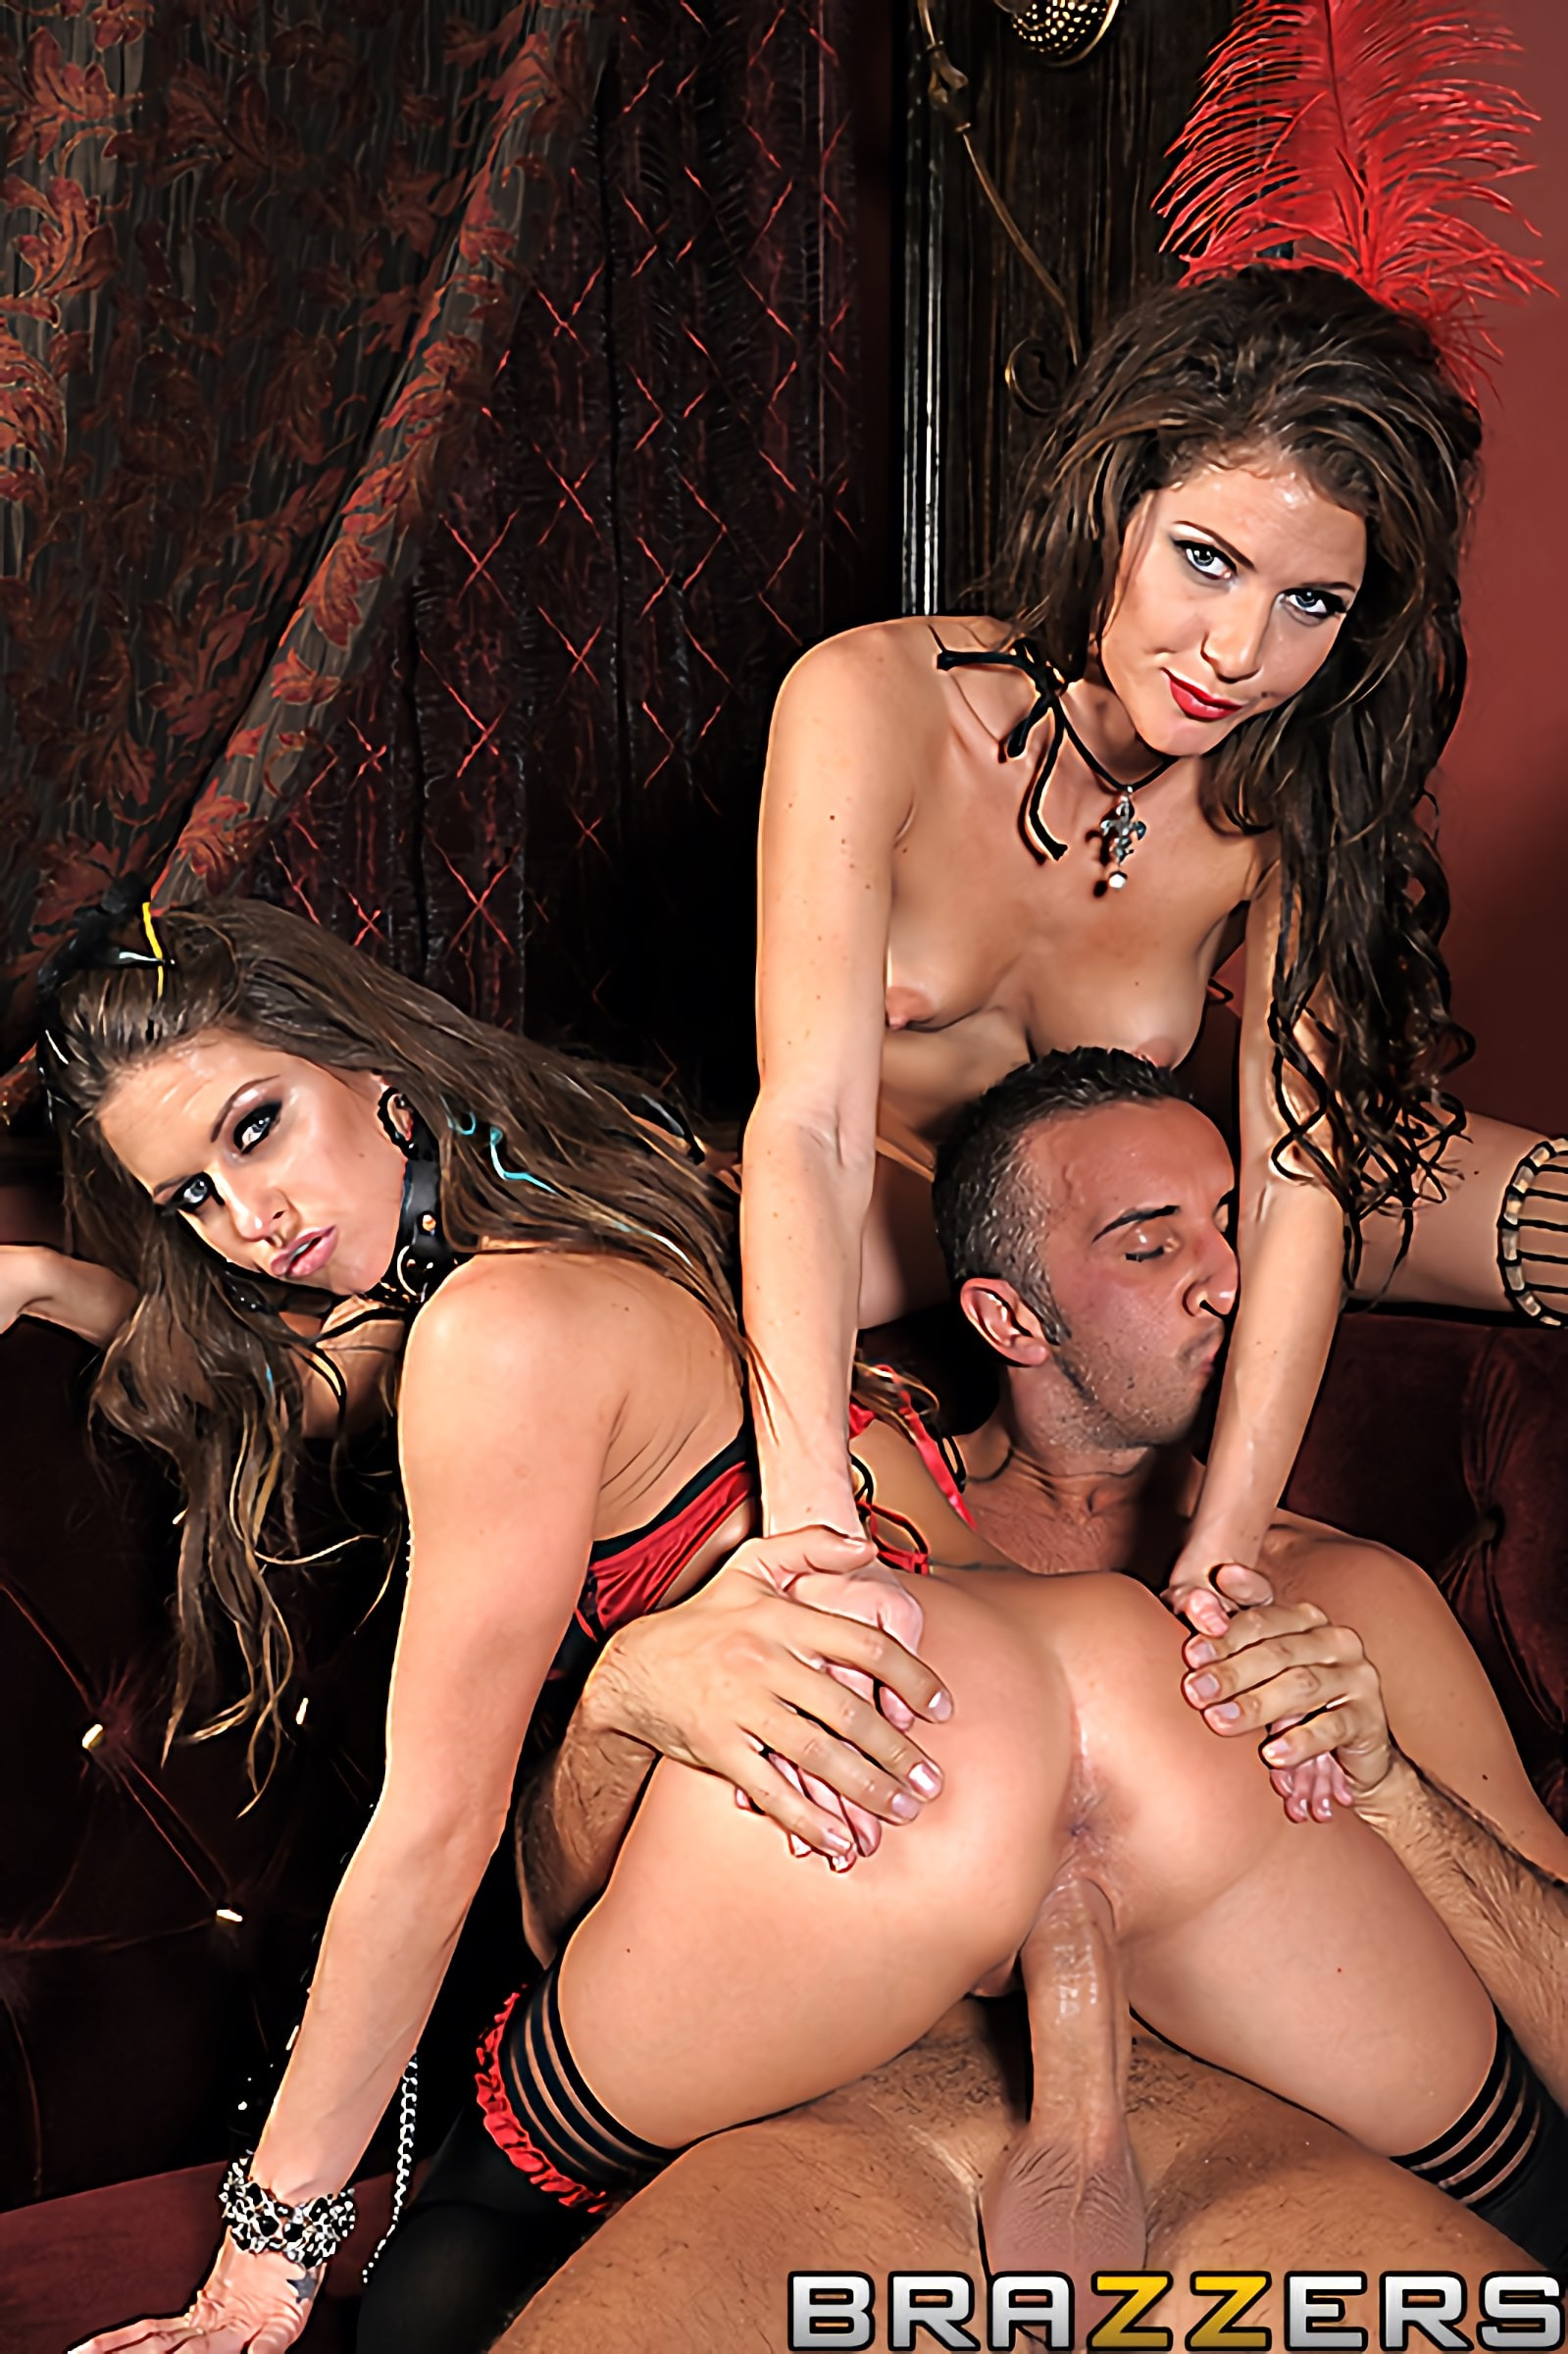 Brazzers 'Caged Pussy' starring Rachel RoXXX (photo 15)